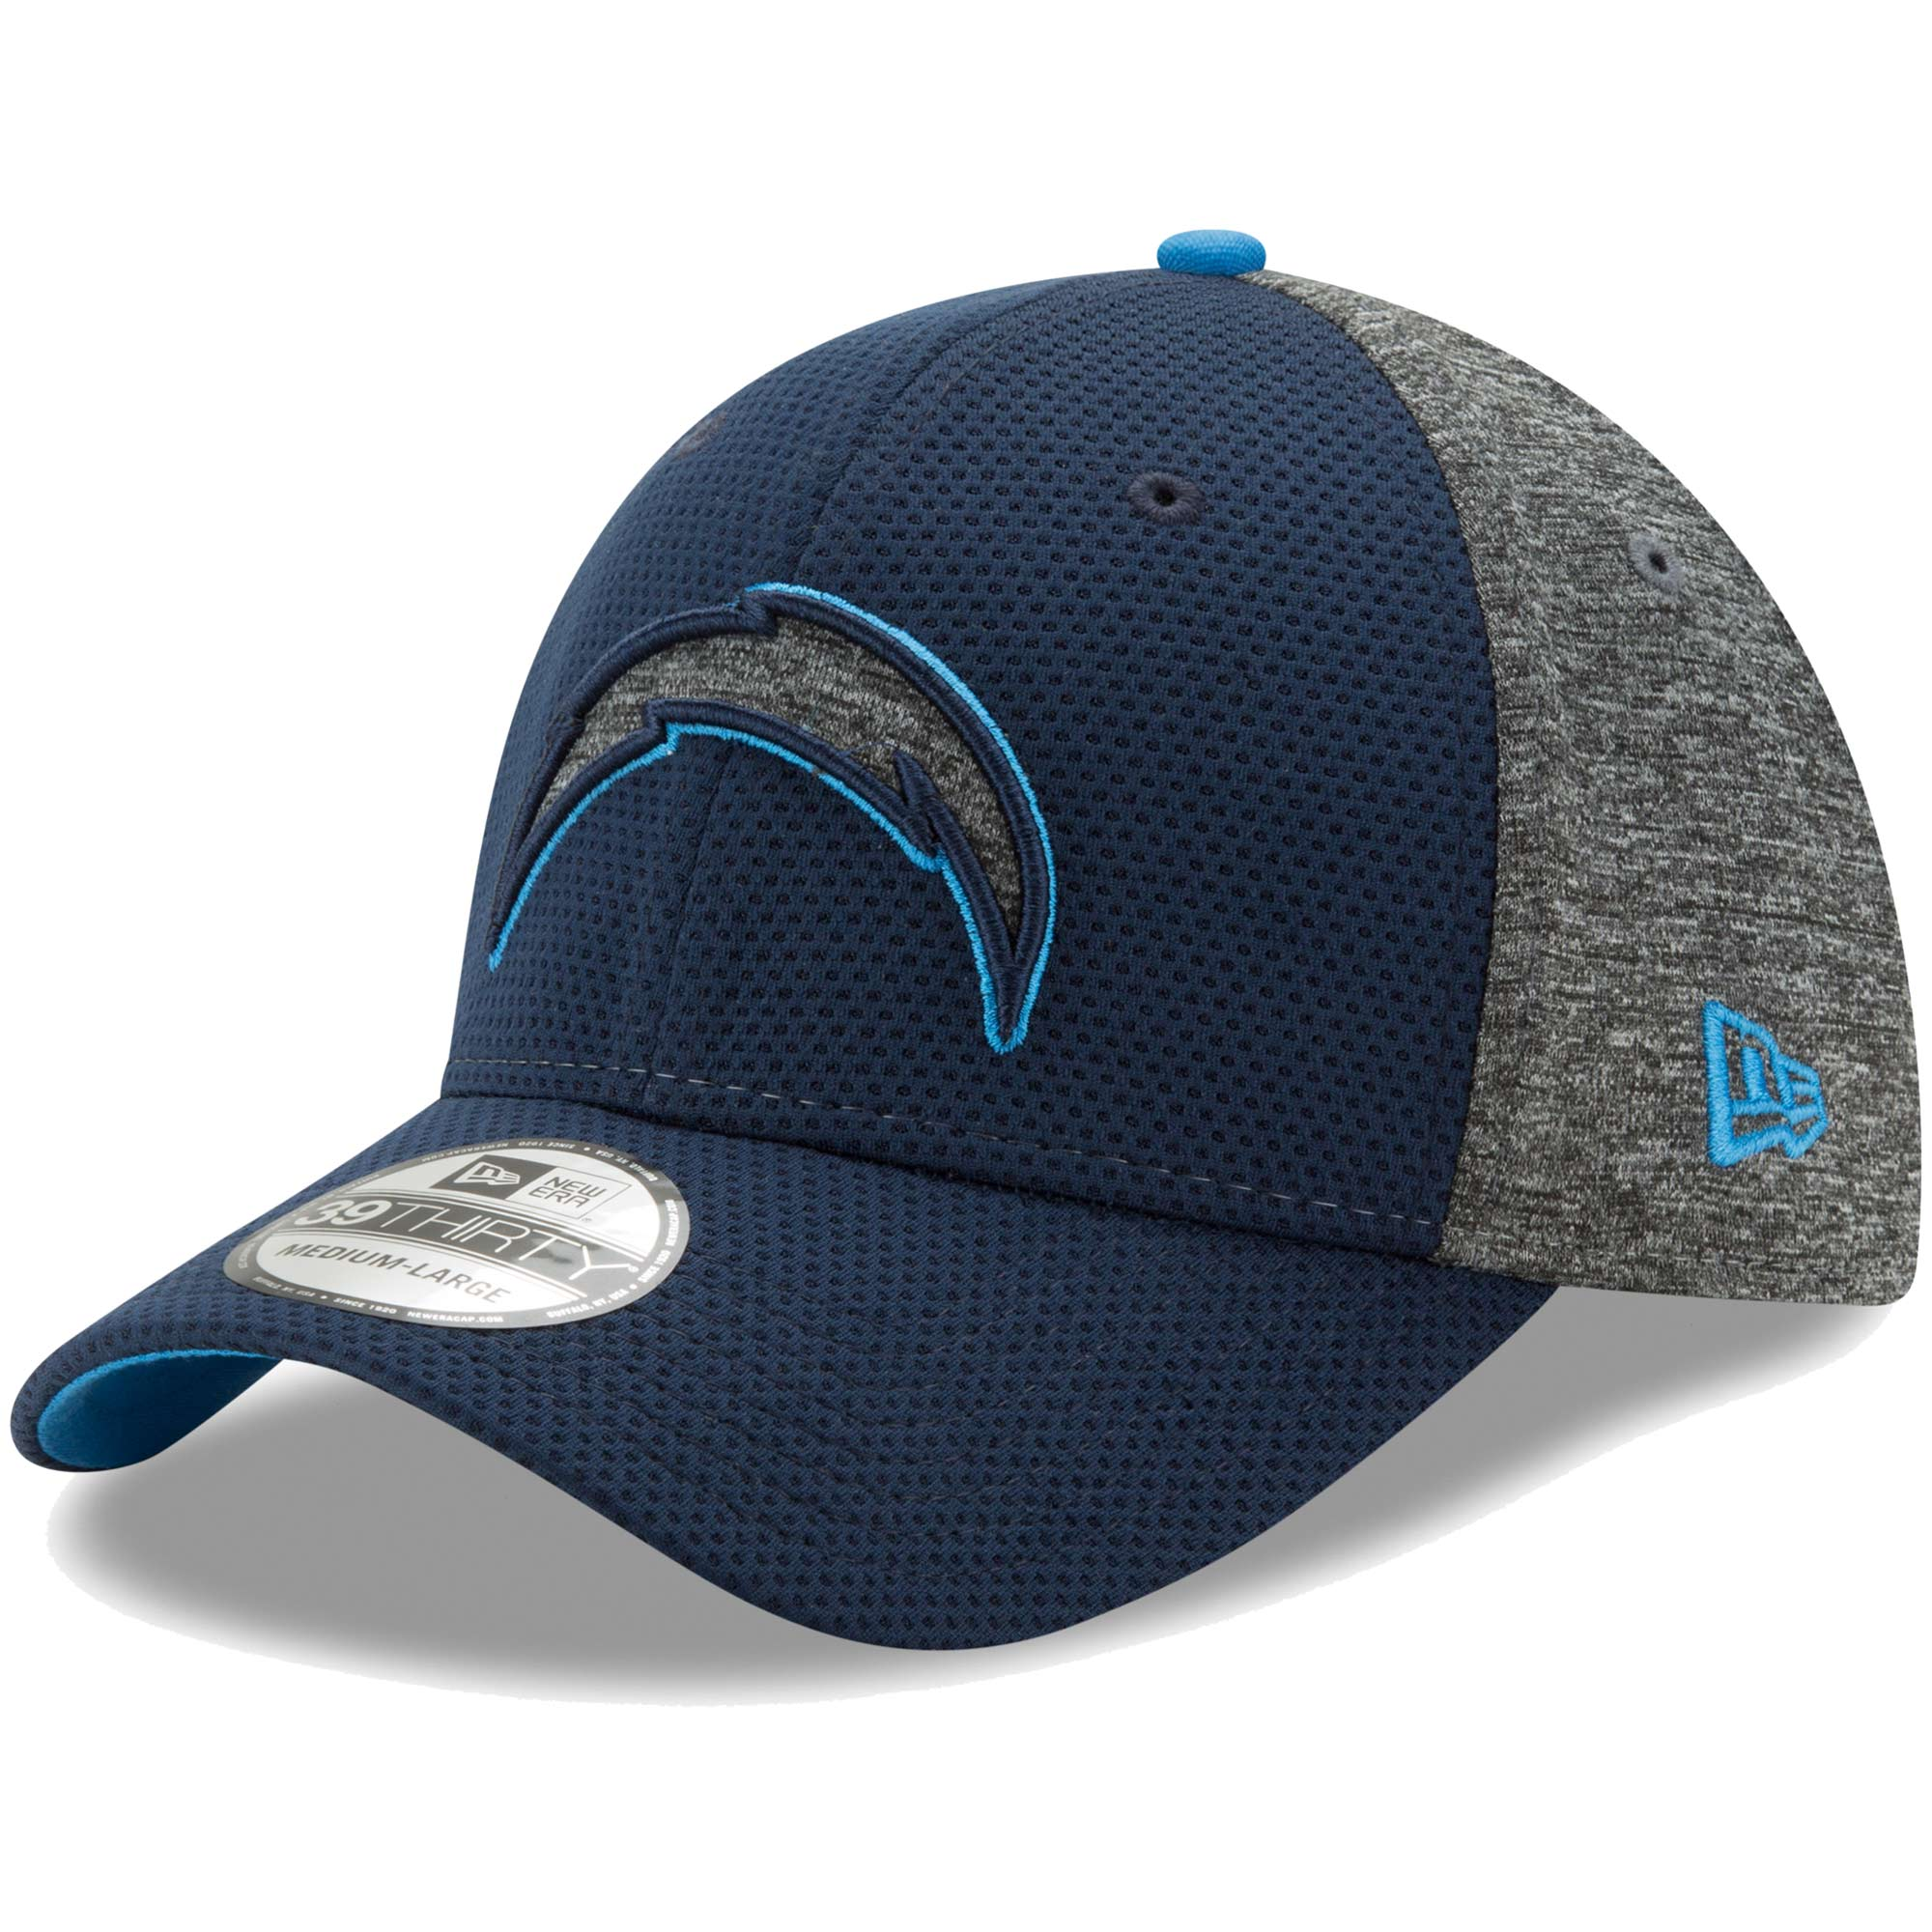 Los Angeles Chargers New Era Fierce Fill Team Color 39THIRTY Flex Hat - Navy/Heathered Gray